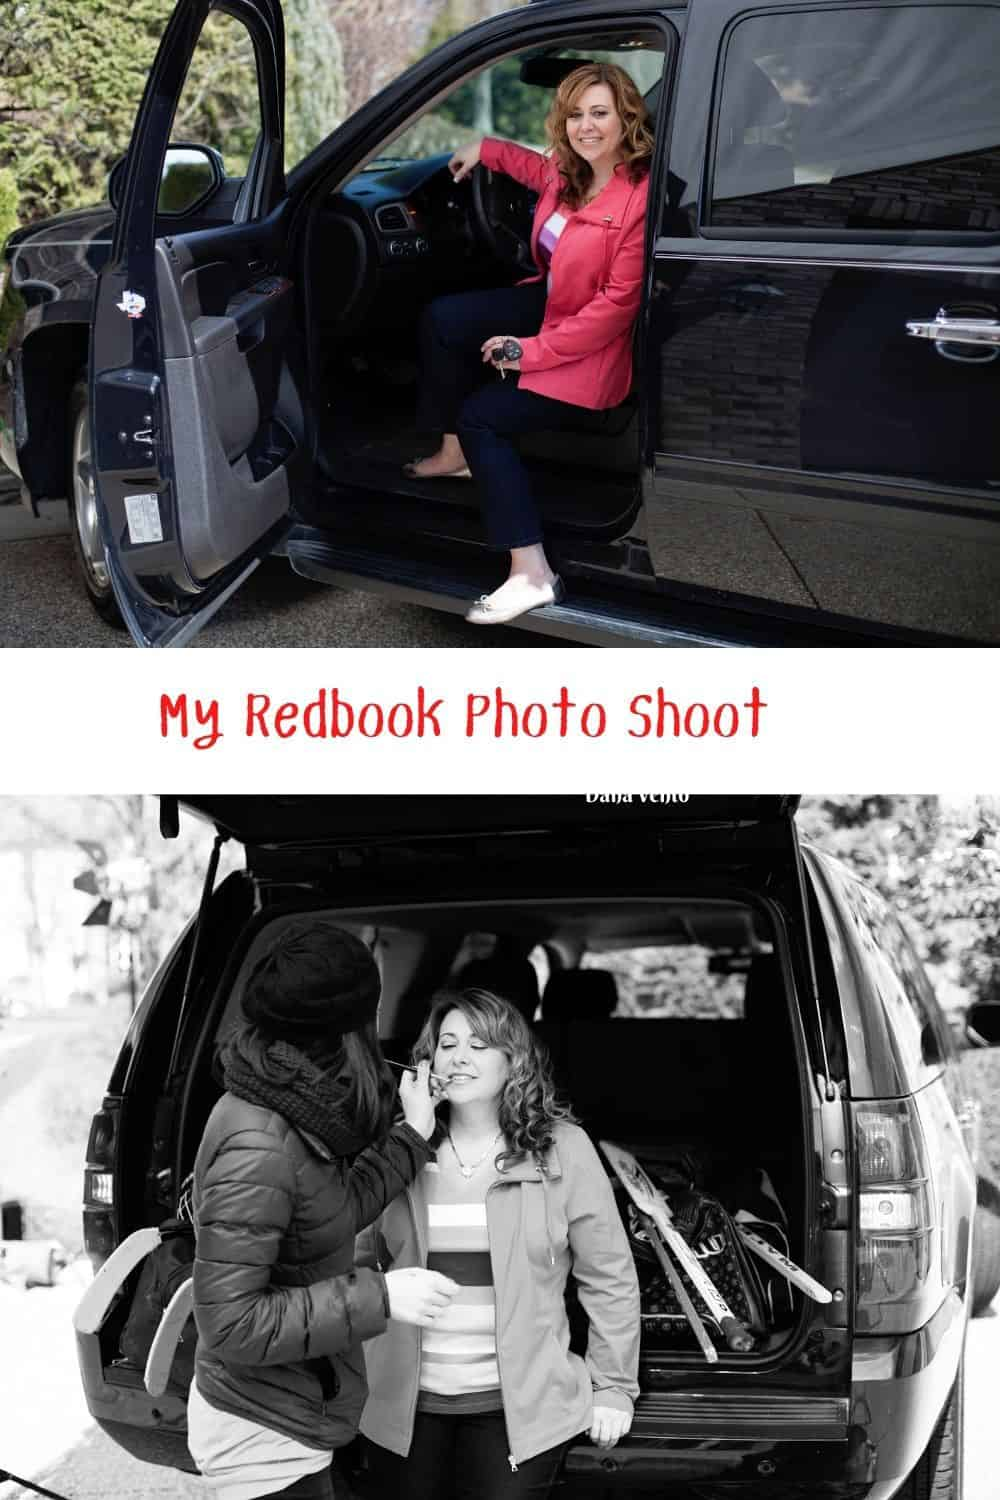 My Redbook Photo Shoot makeup and in car